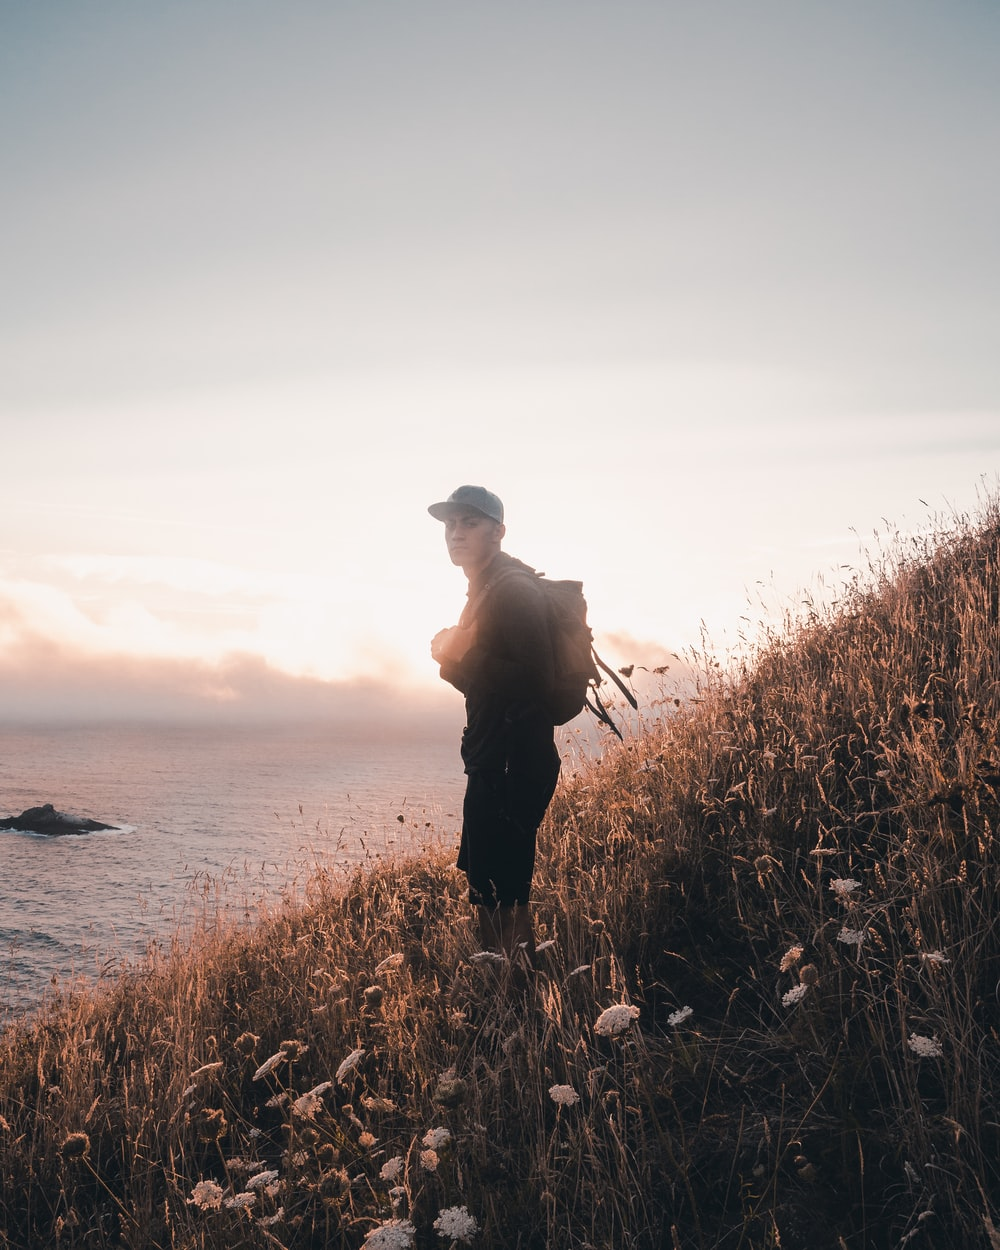 man with backpack standing at the hill overlooking the ocean